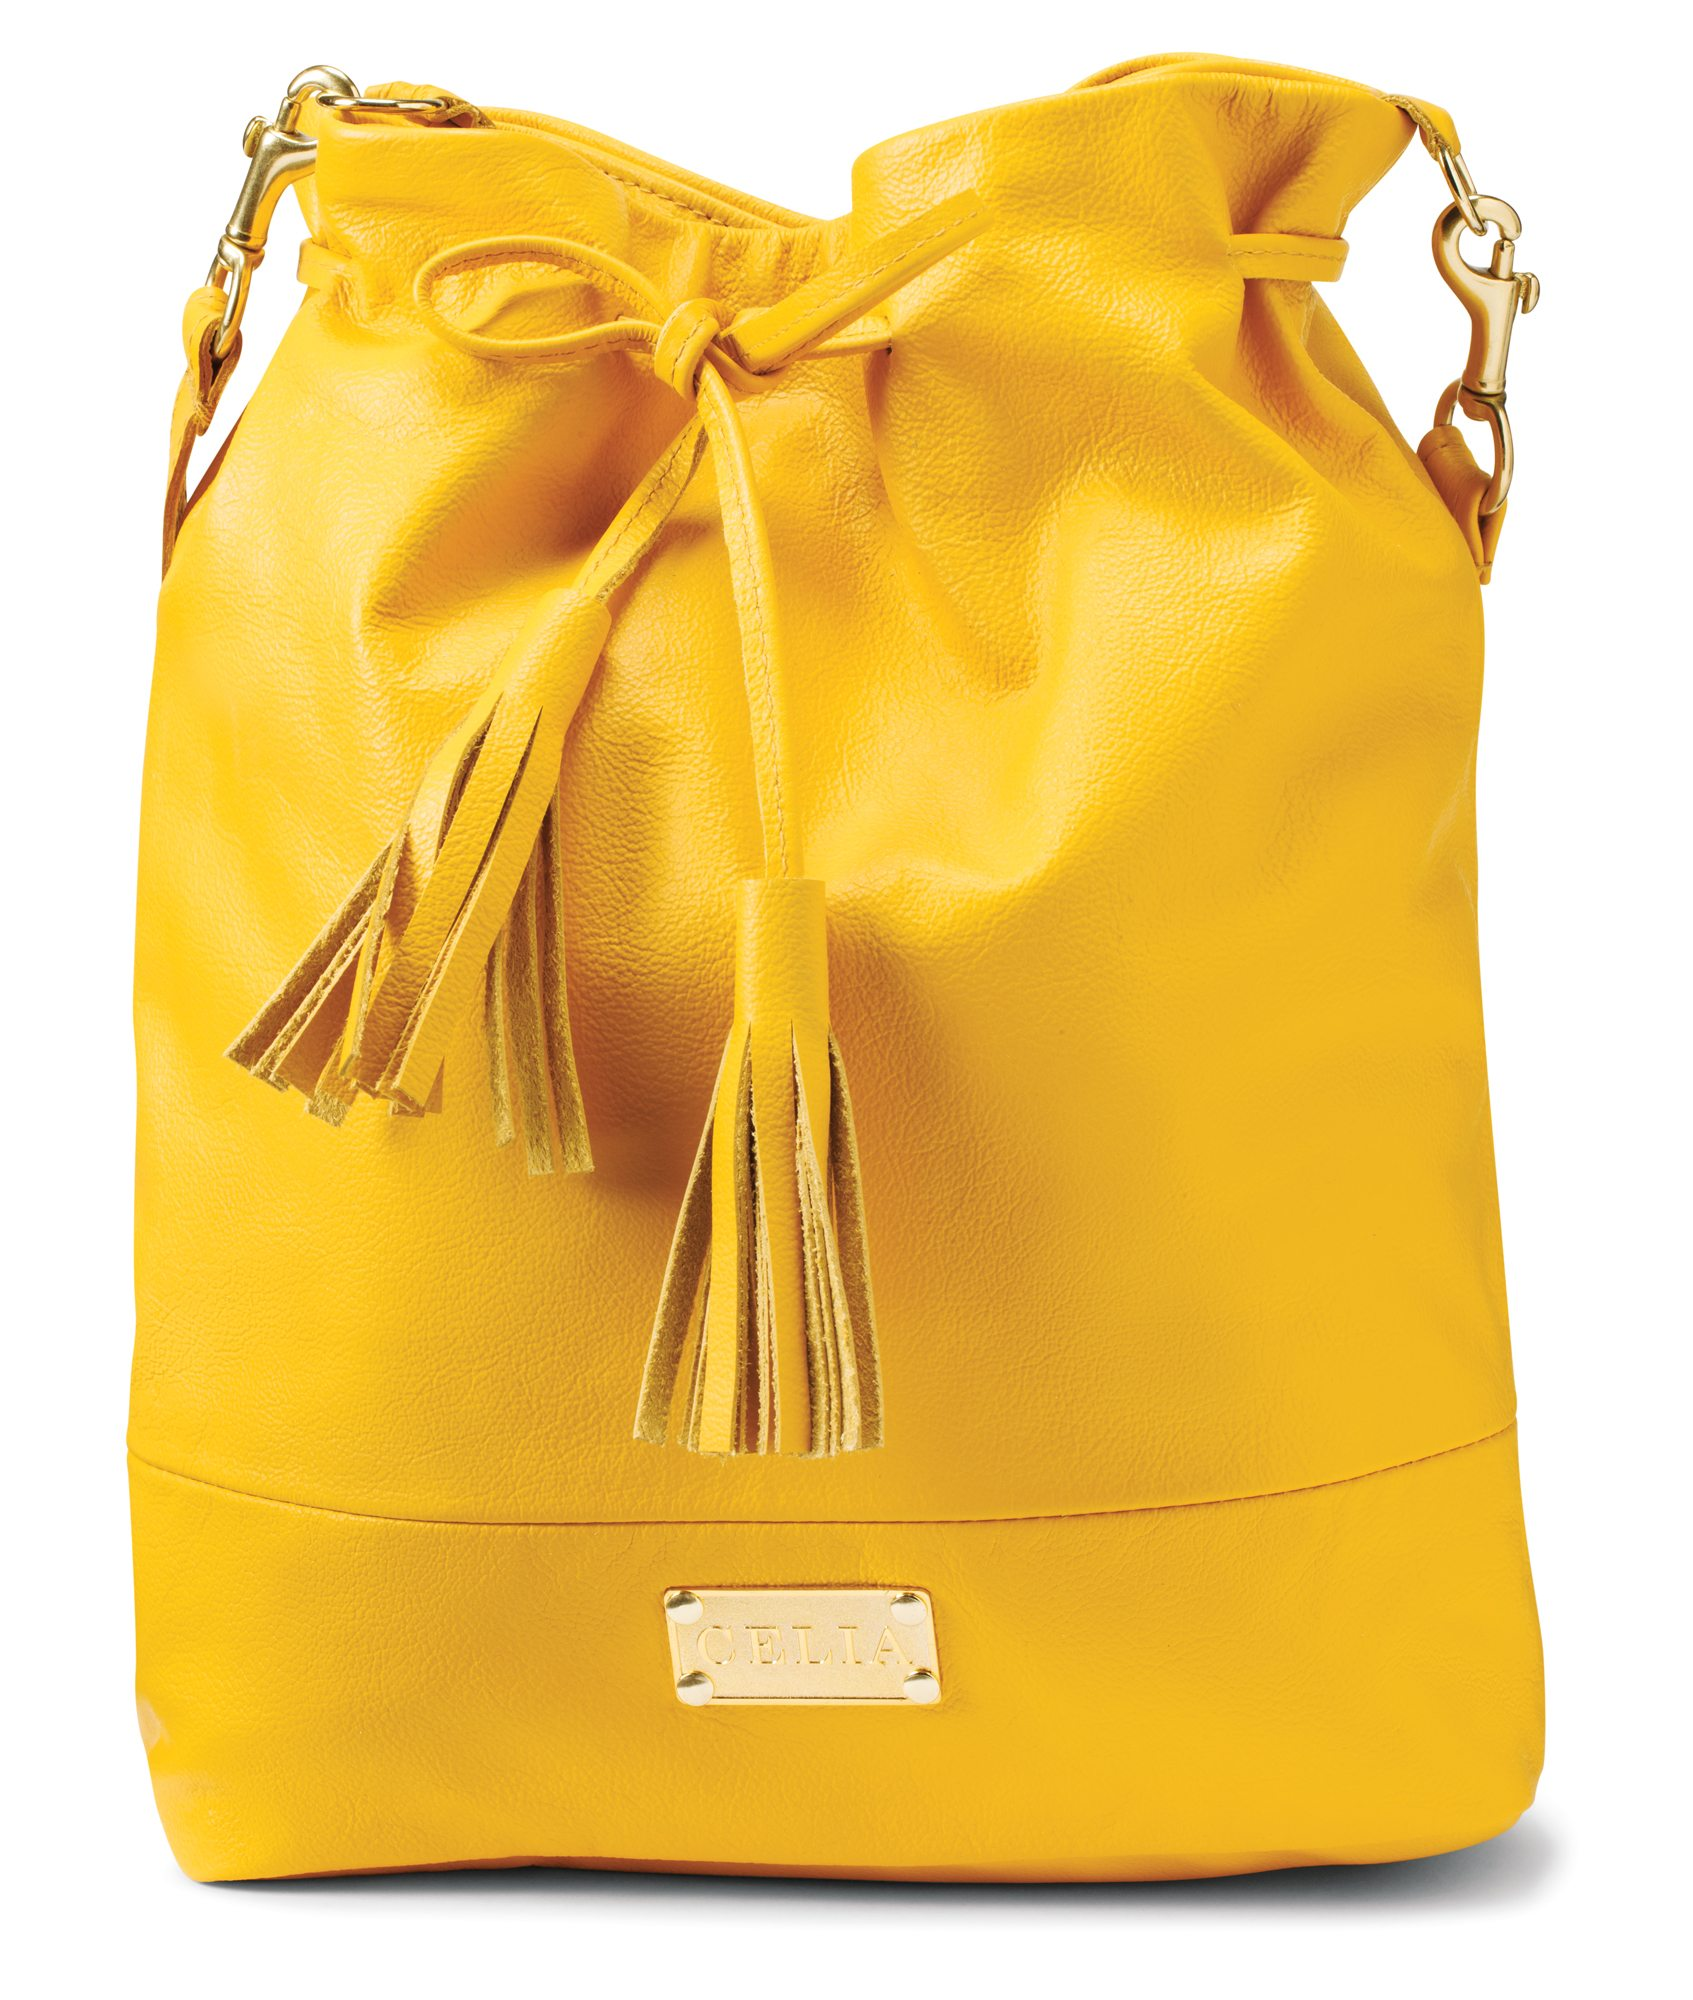 Large yellow leather drawstring bucket purse $286 by Lia Walker